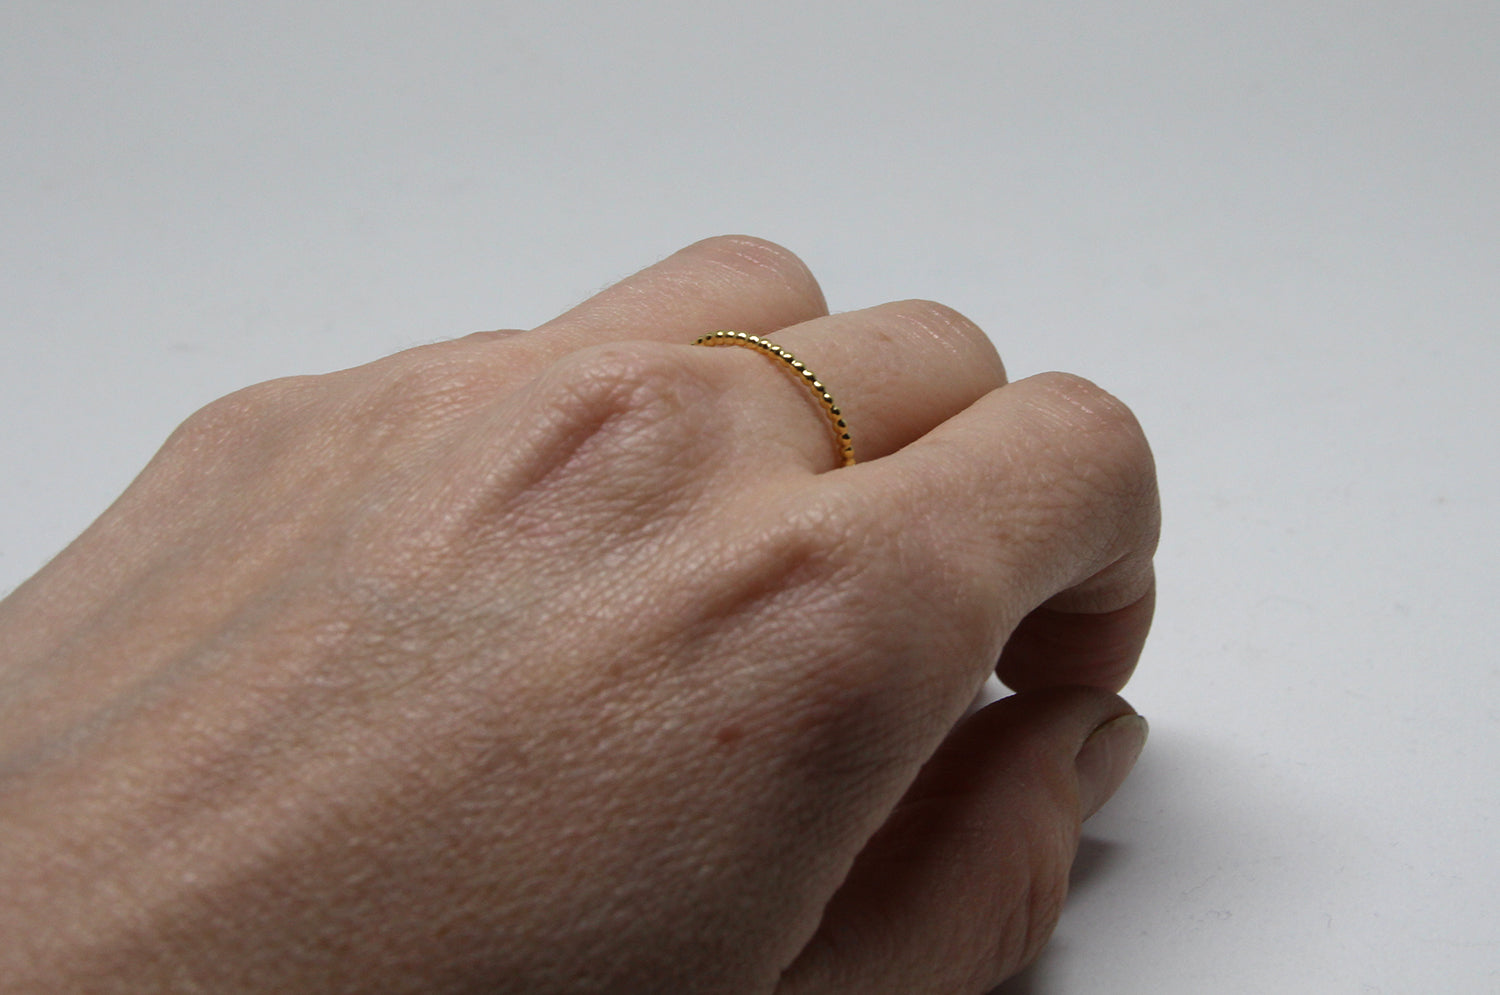 llayers jewelry Minimalist stacking vermeil ring with a beaded wire bague fine à empiler perlée en vermeil or